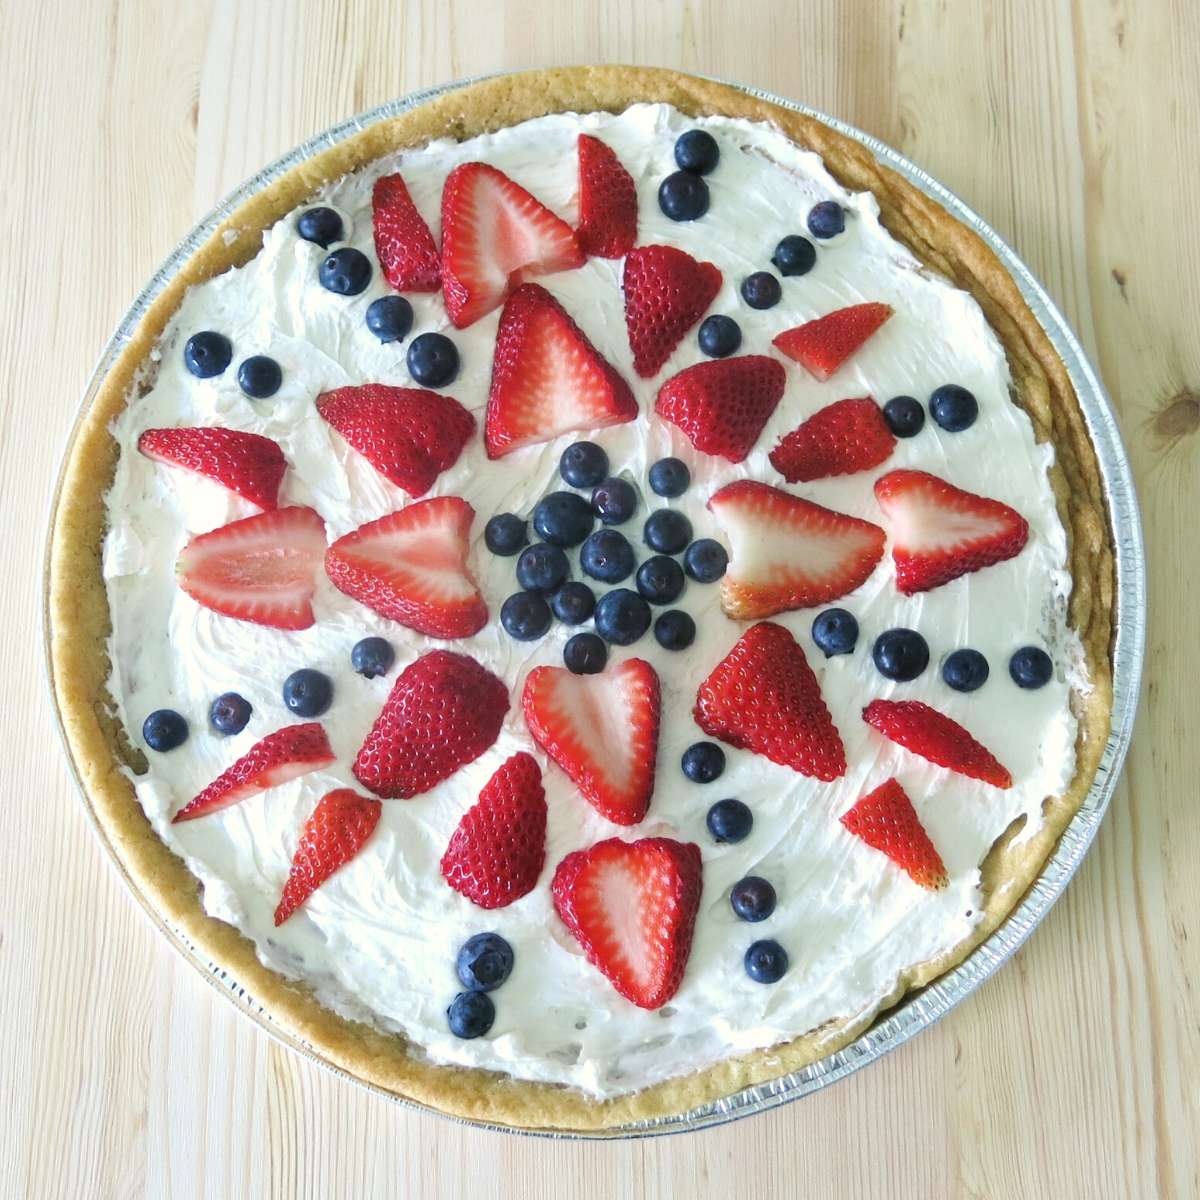 Fruit pizza cookie decorated with strawberries and blueberries.